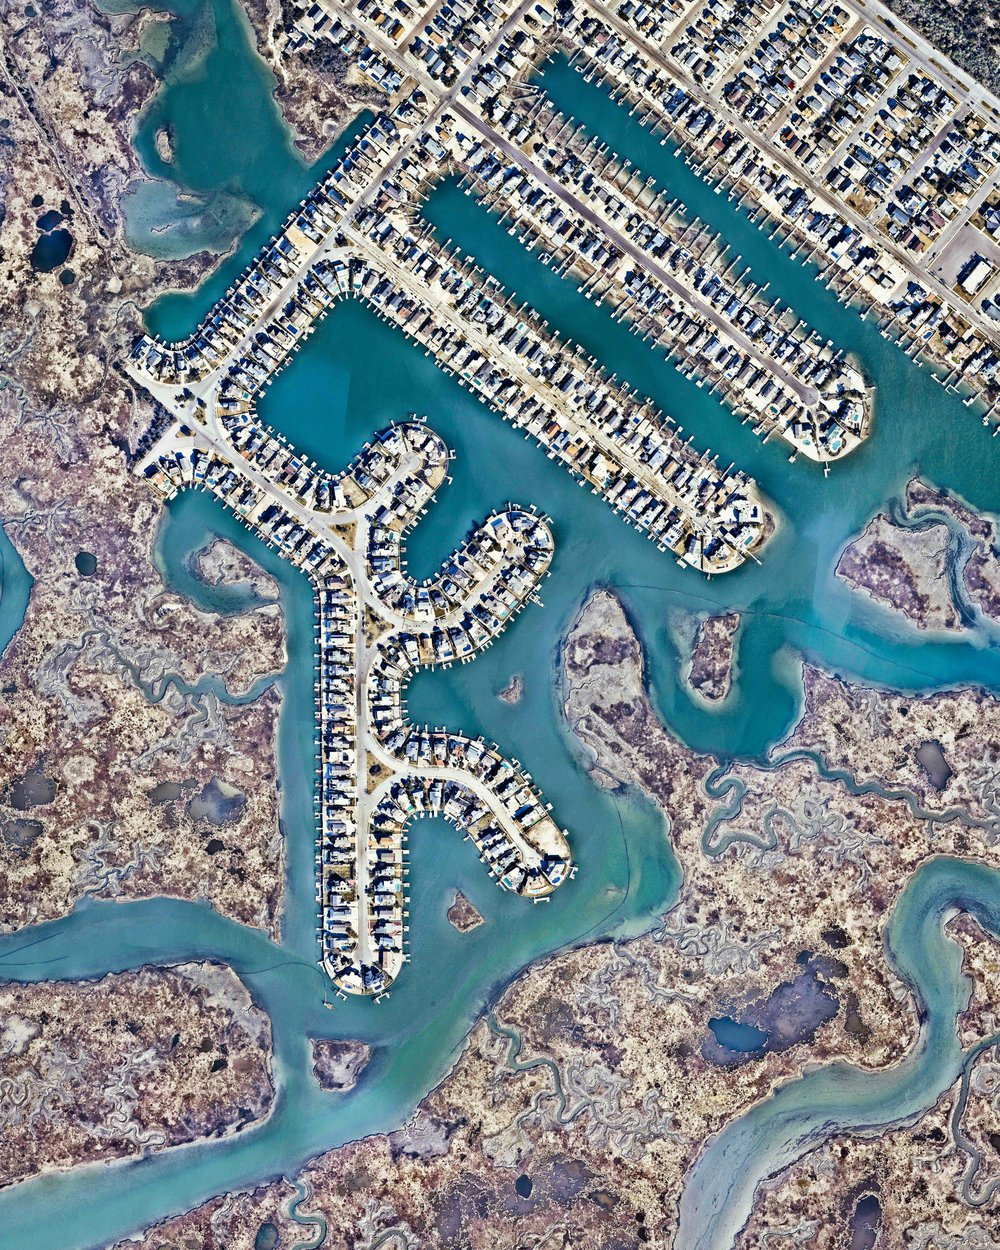 "Cottages line the waterways of Avalon, a coastal community in Cape May County, New Jersey. Avalon is home to some of the most expensive real estate on the East Coast of the United States.  39°05'20.0""N, 74°44'18.9""W  Source imagery: Nearmap"